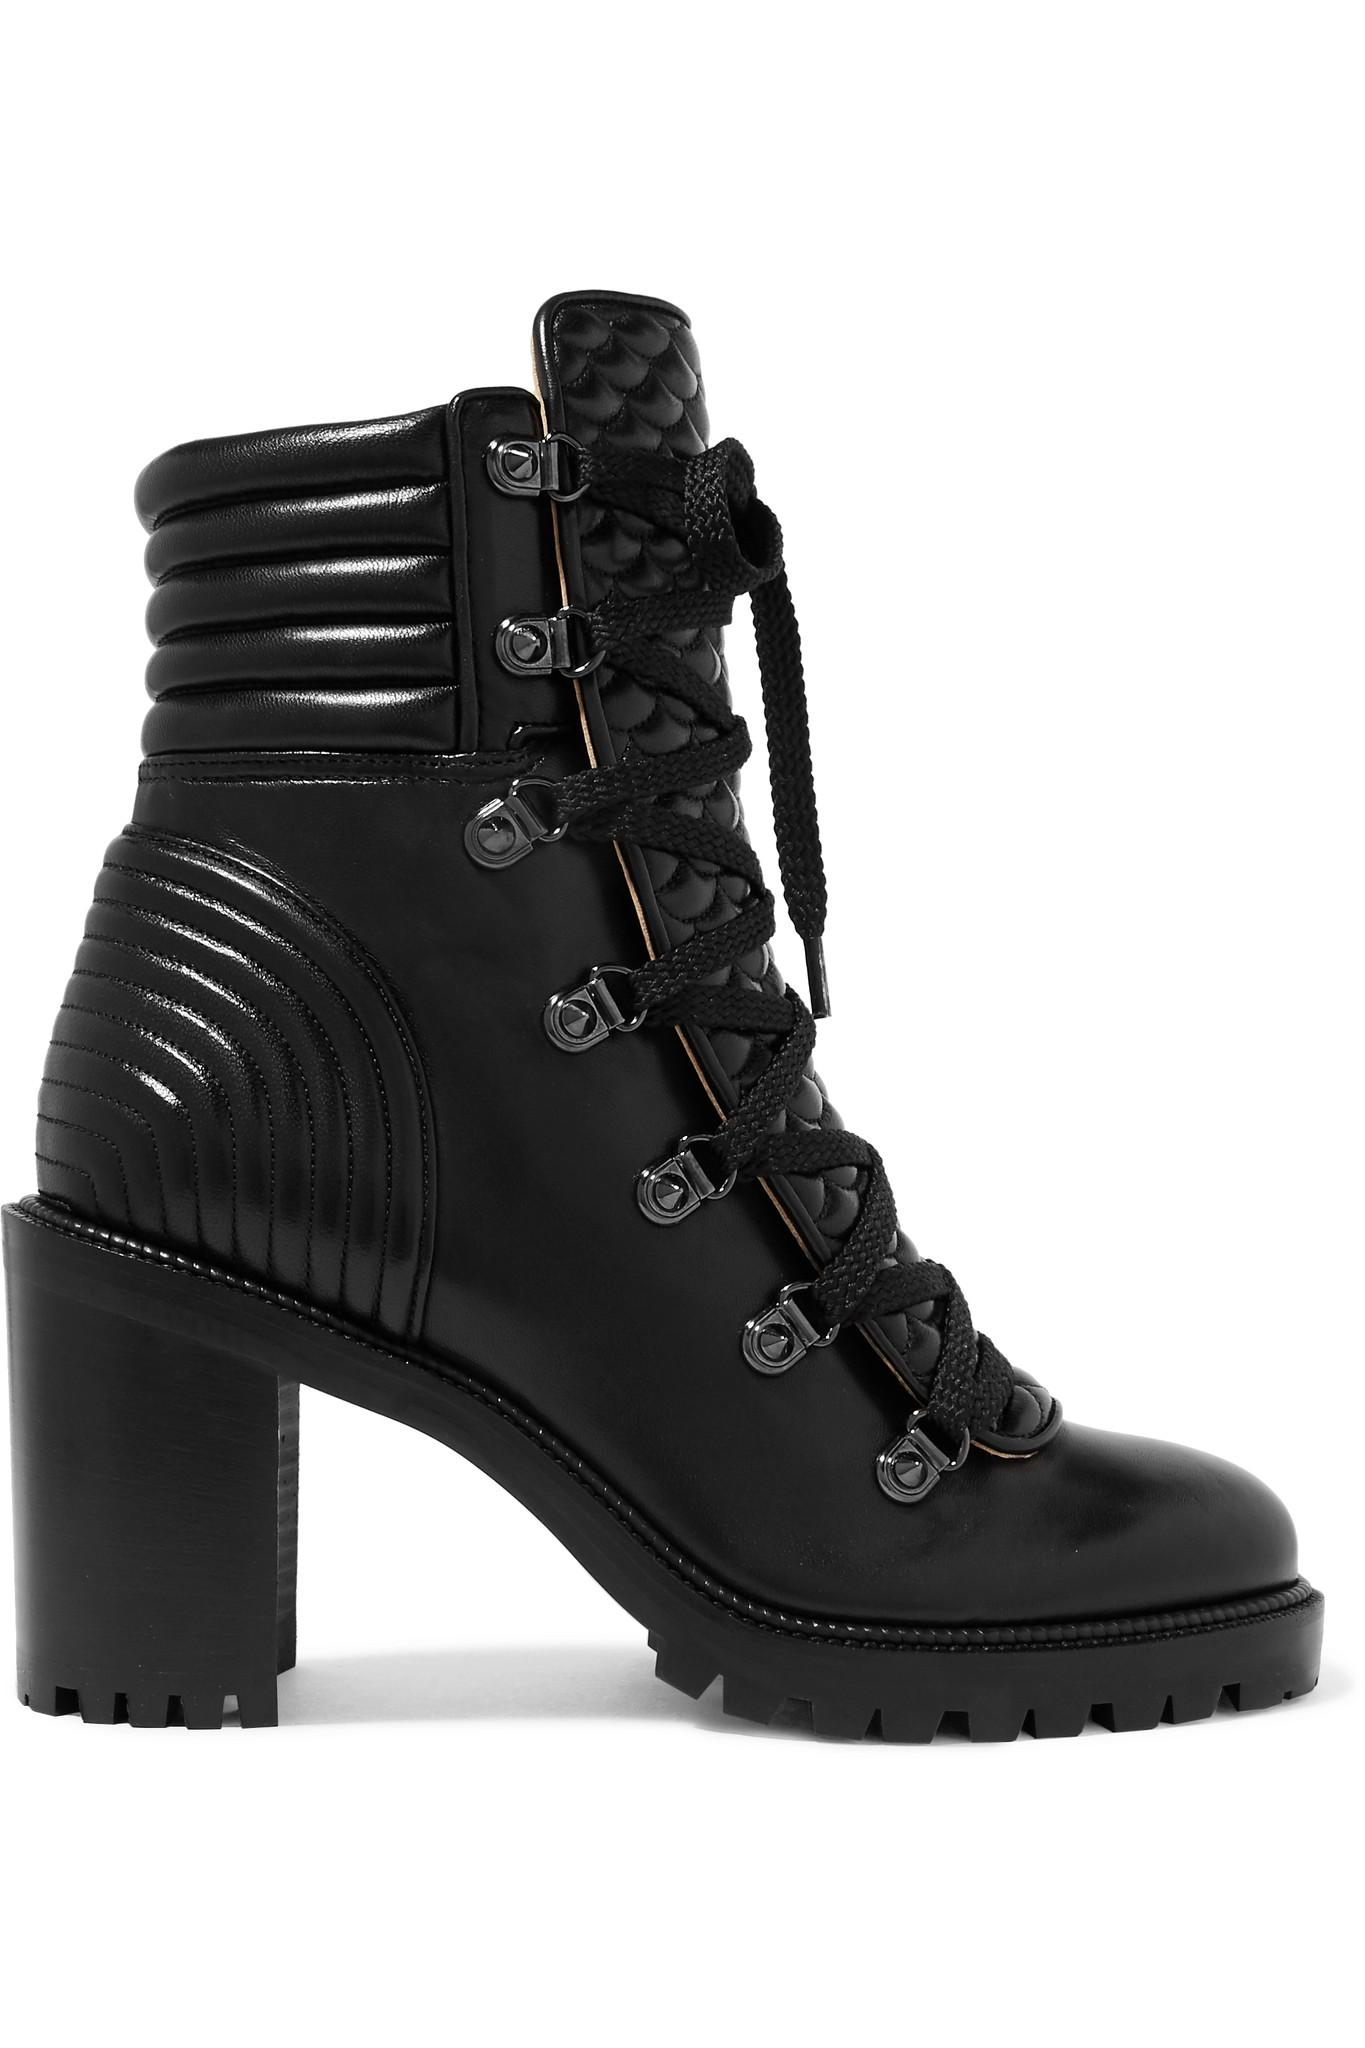 timeless design 6a933 20ff1 Christian Louboutin Black Mad 70 Spiked Quilted Leather Ankle Boots